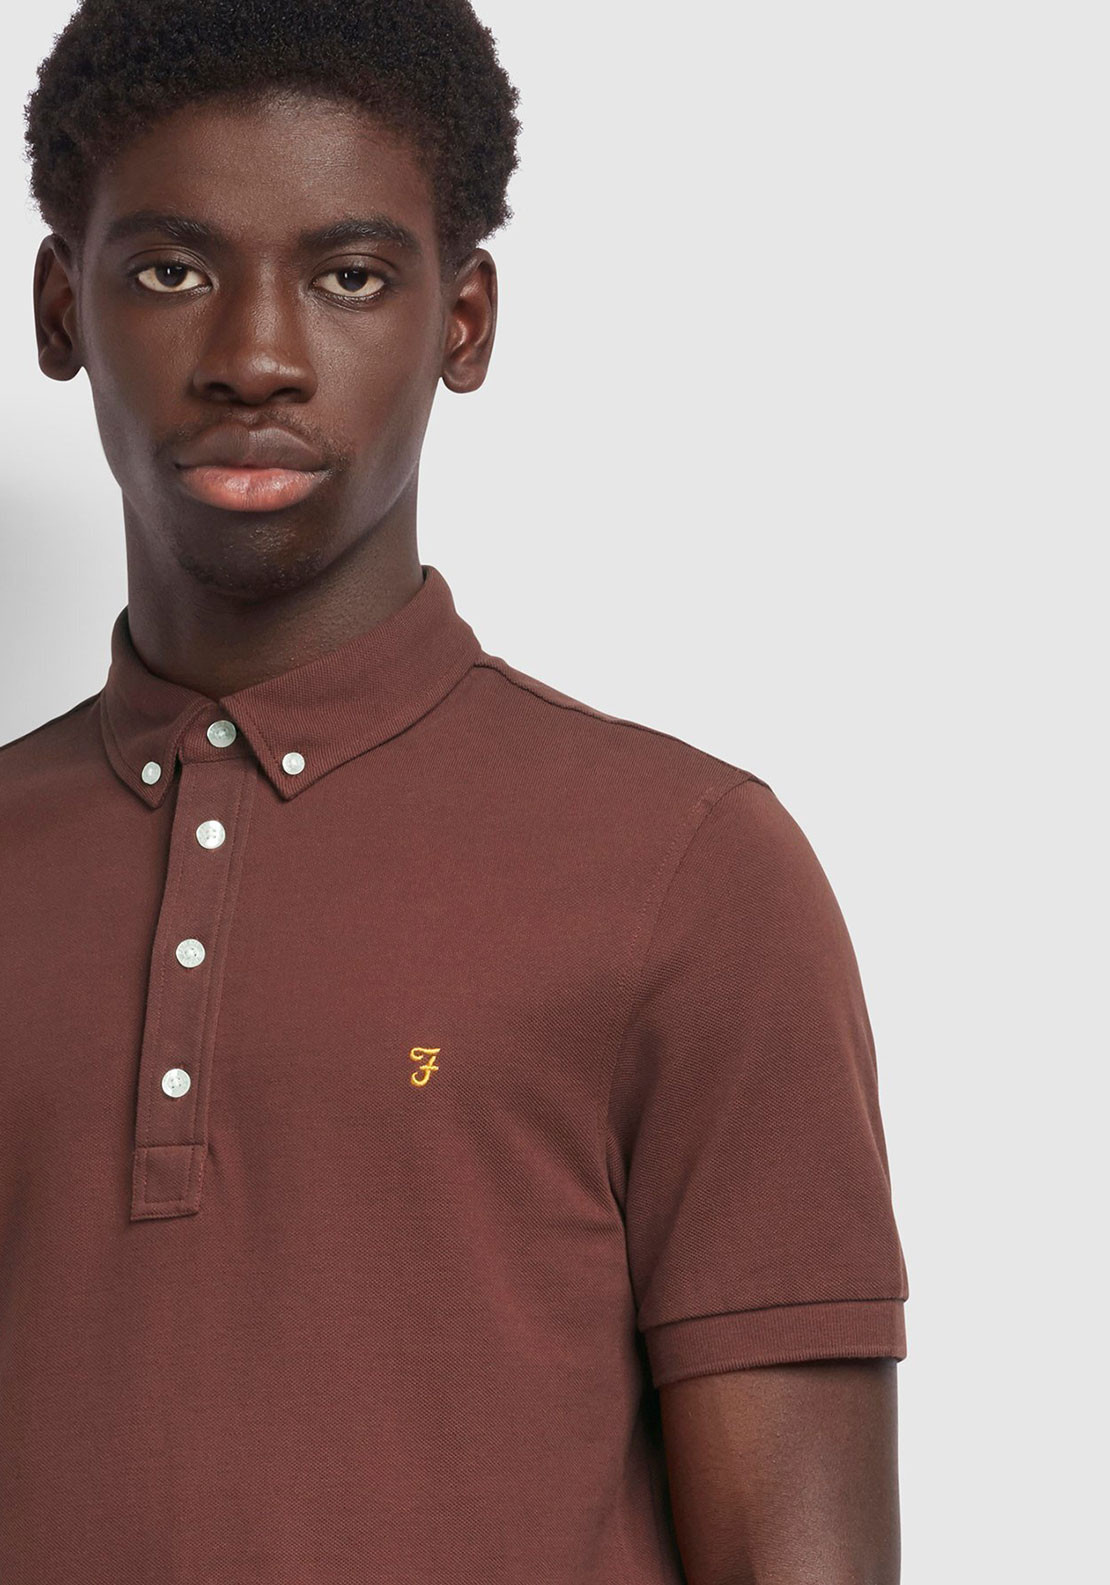 Details about  /Farah Ricky Mens T-shirt Polo Shirt Burgundy All Sizes